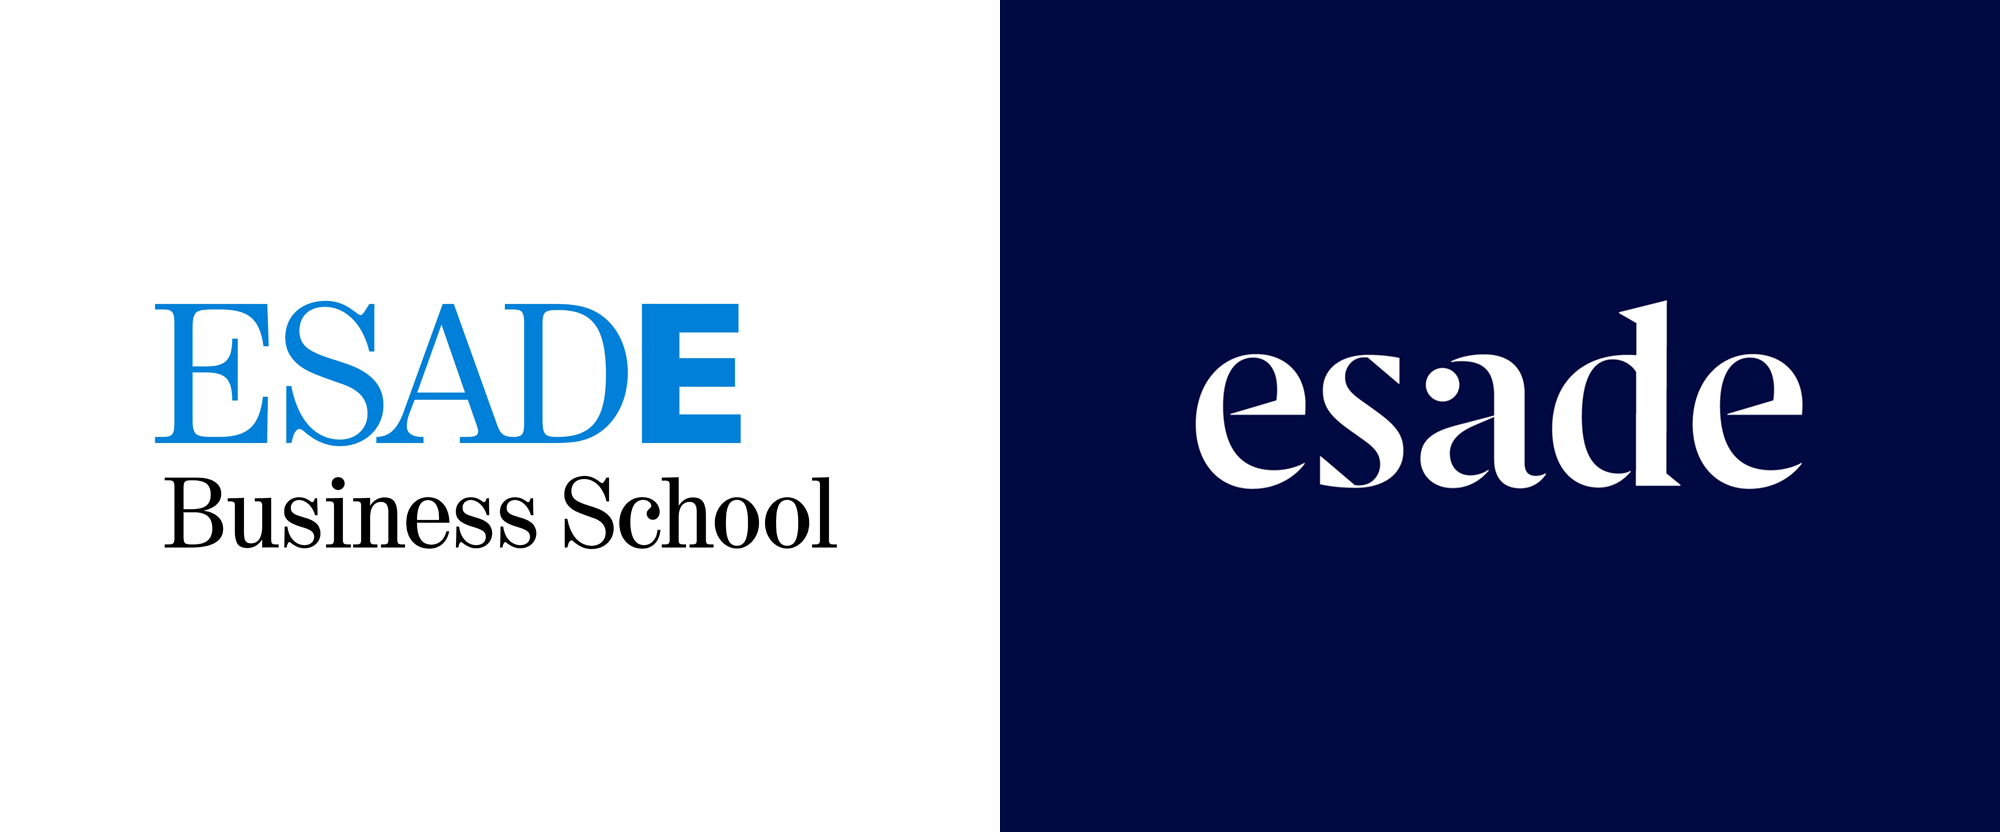 New Logo and Identity for ESADE by Firma